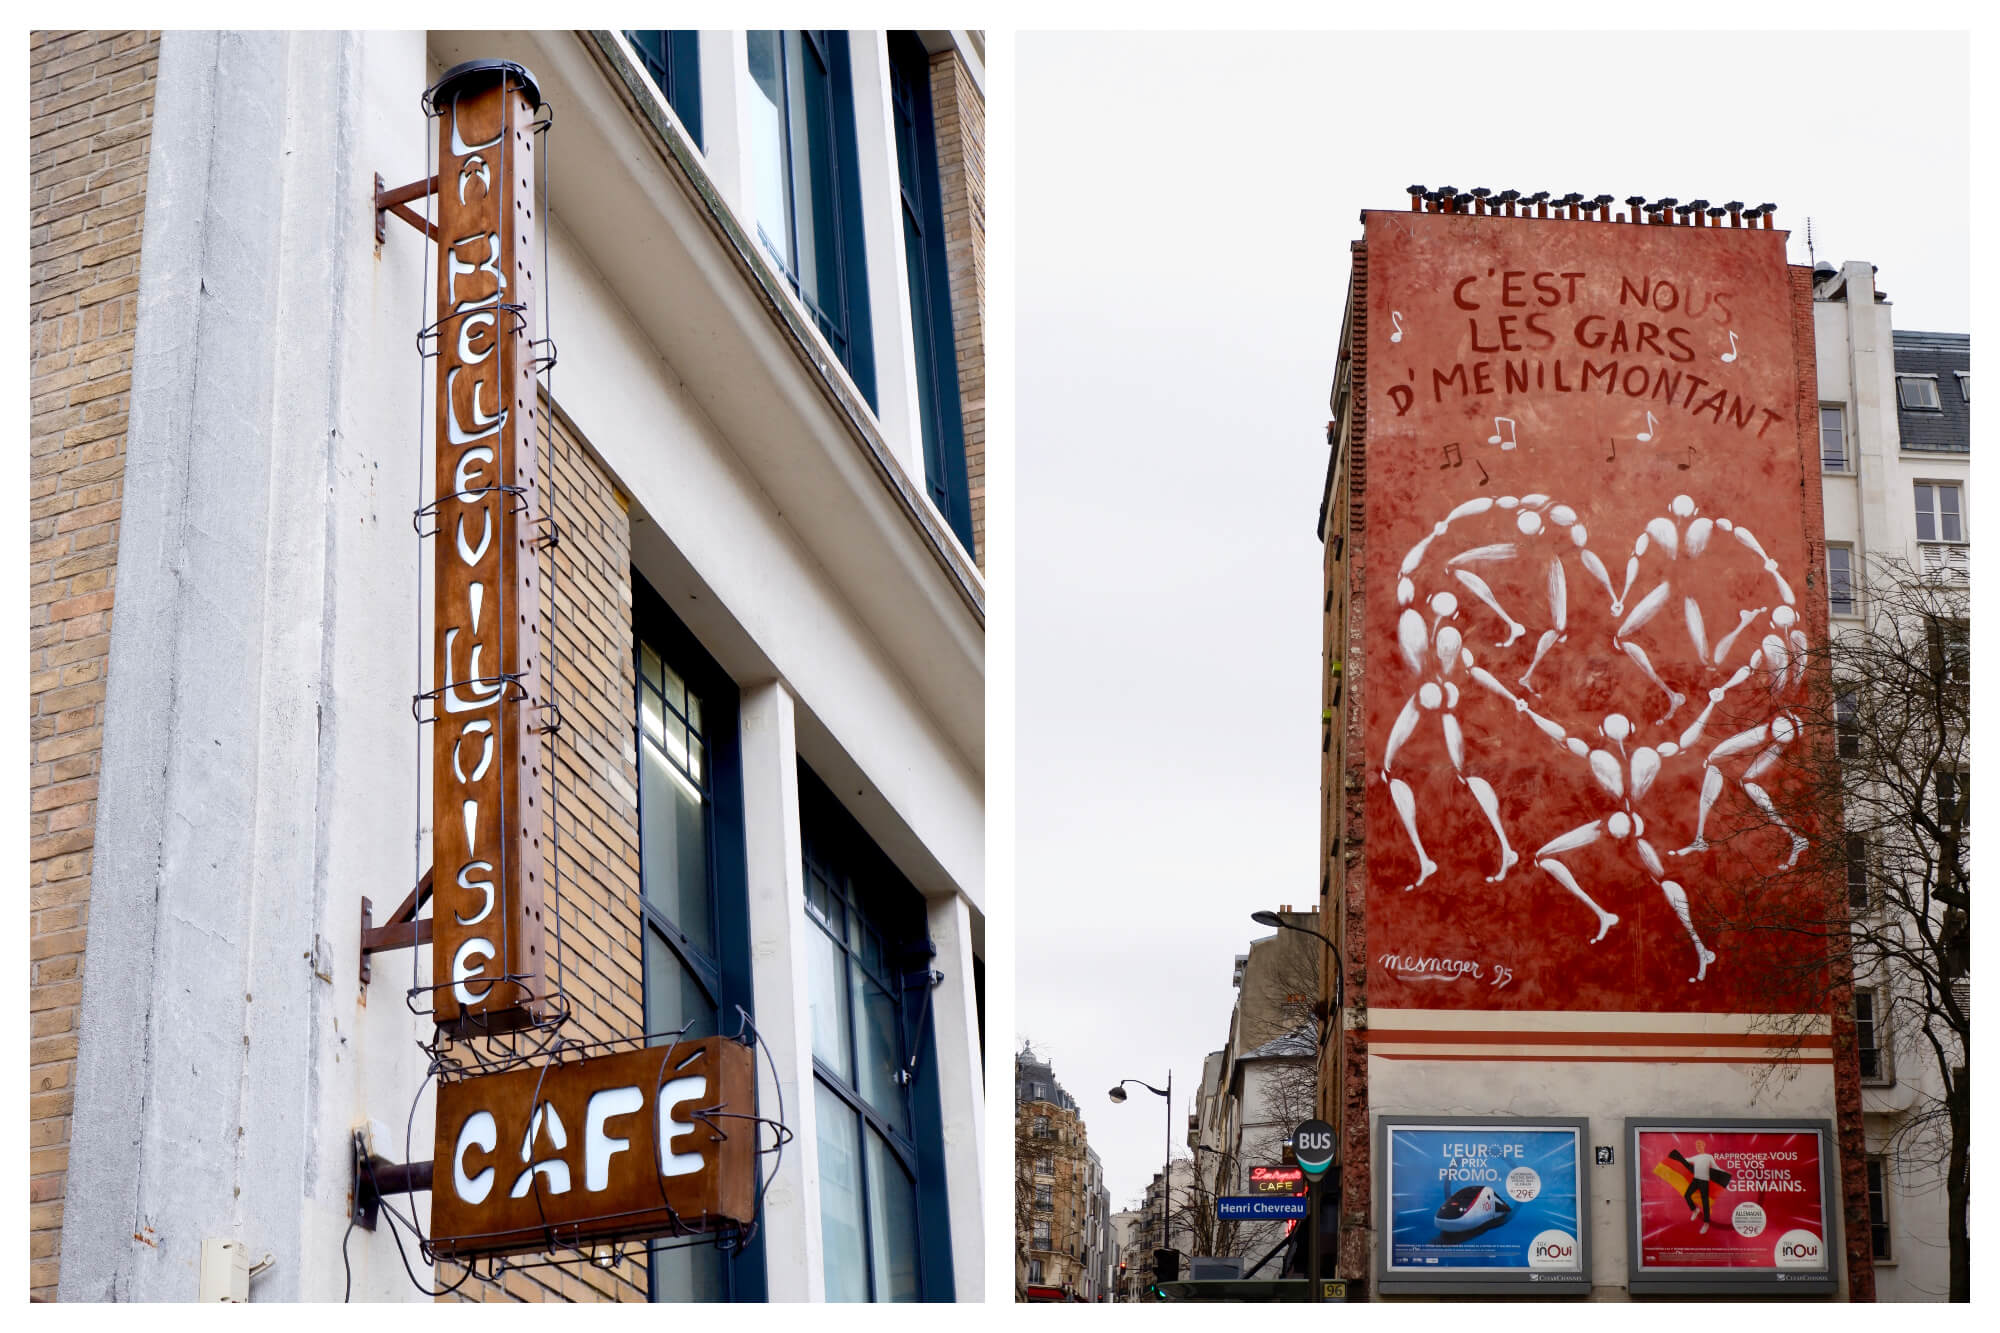 Left: Two brown rusted signs with art nouveau lettering on the outside of a building. The first has the name of the cafe 'La Bellevilloise'. Below is a sign with the word 'Cafe'. Right: A large street art piece on the side of a building. The entire wall is painted red, there are five white figures dancing in a circle, musical notes, and the words 'C'est nous les gars d'Menilmontant'.